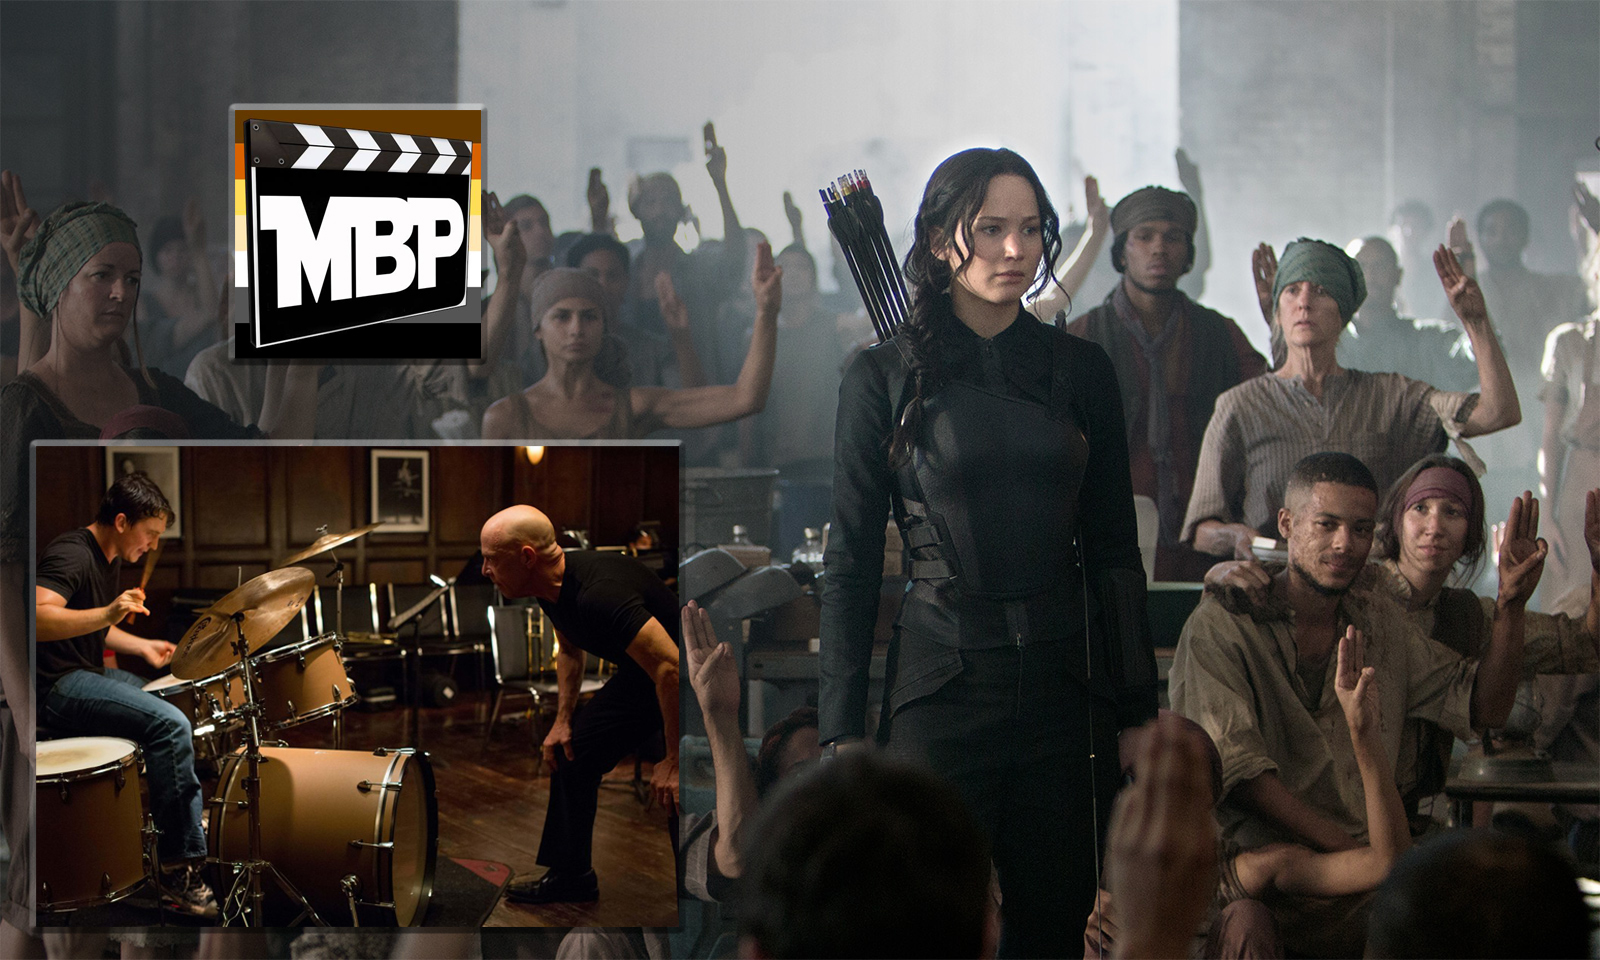 MBP e105 - 'The Hunger Games - Mockingjay Part 1' and 'Whiplash' (11/27/14)    It's time for another Movie Bears Podcast double-feature! This week, we're talking about 'The Hunger Games - Mockingjay Part 1' and 'Whiplash.' Click through to view!